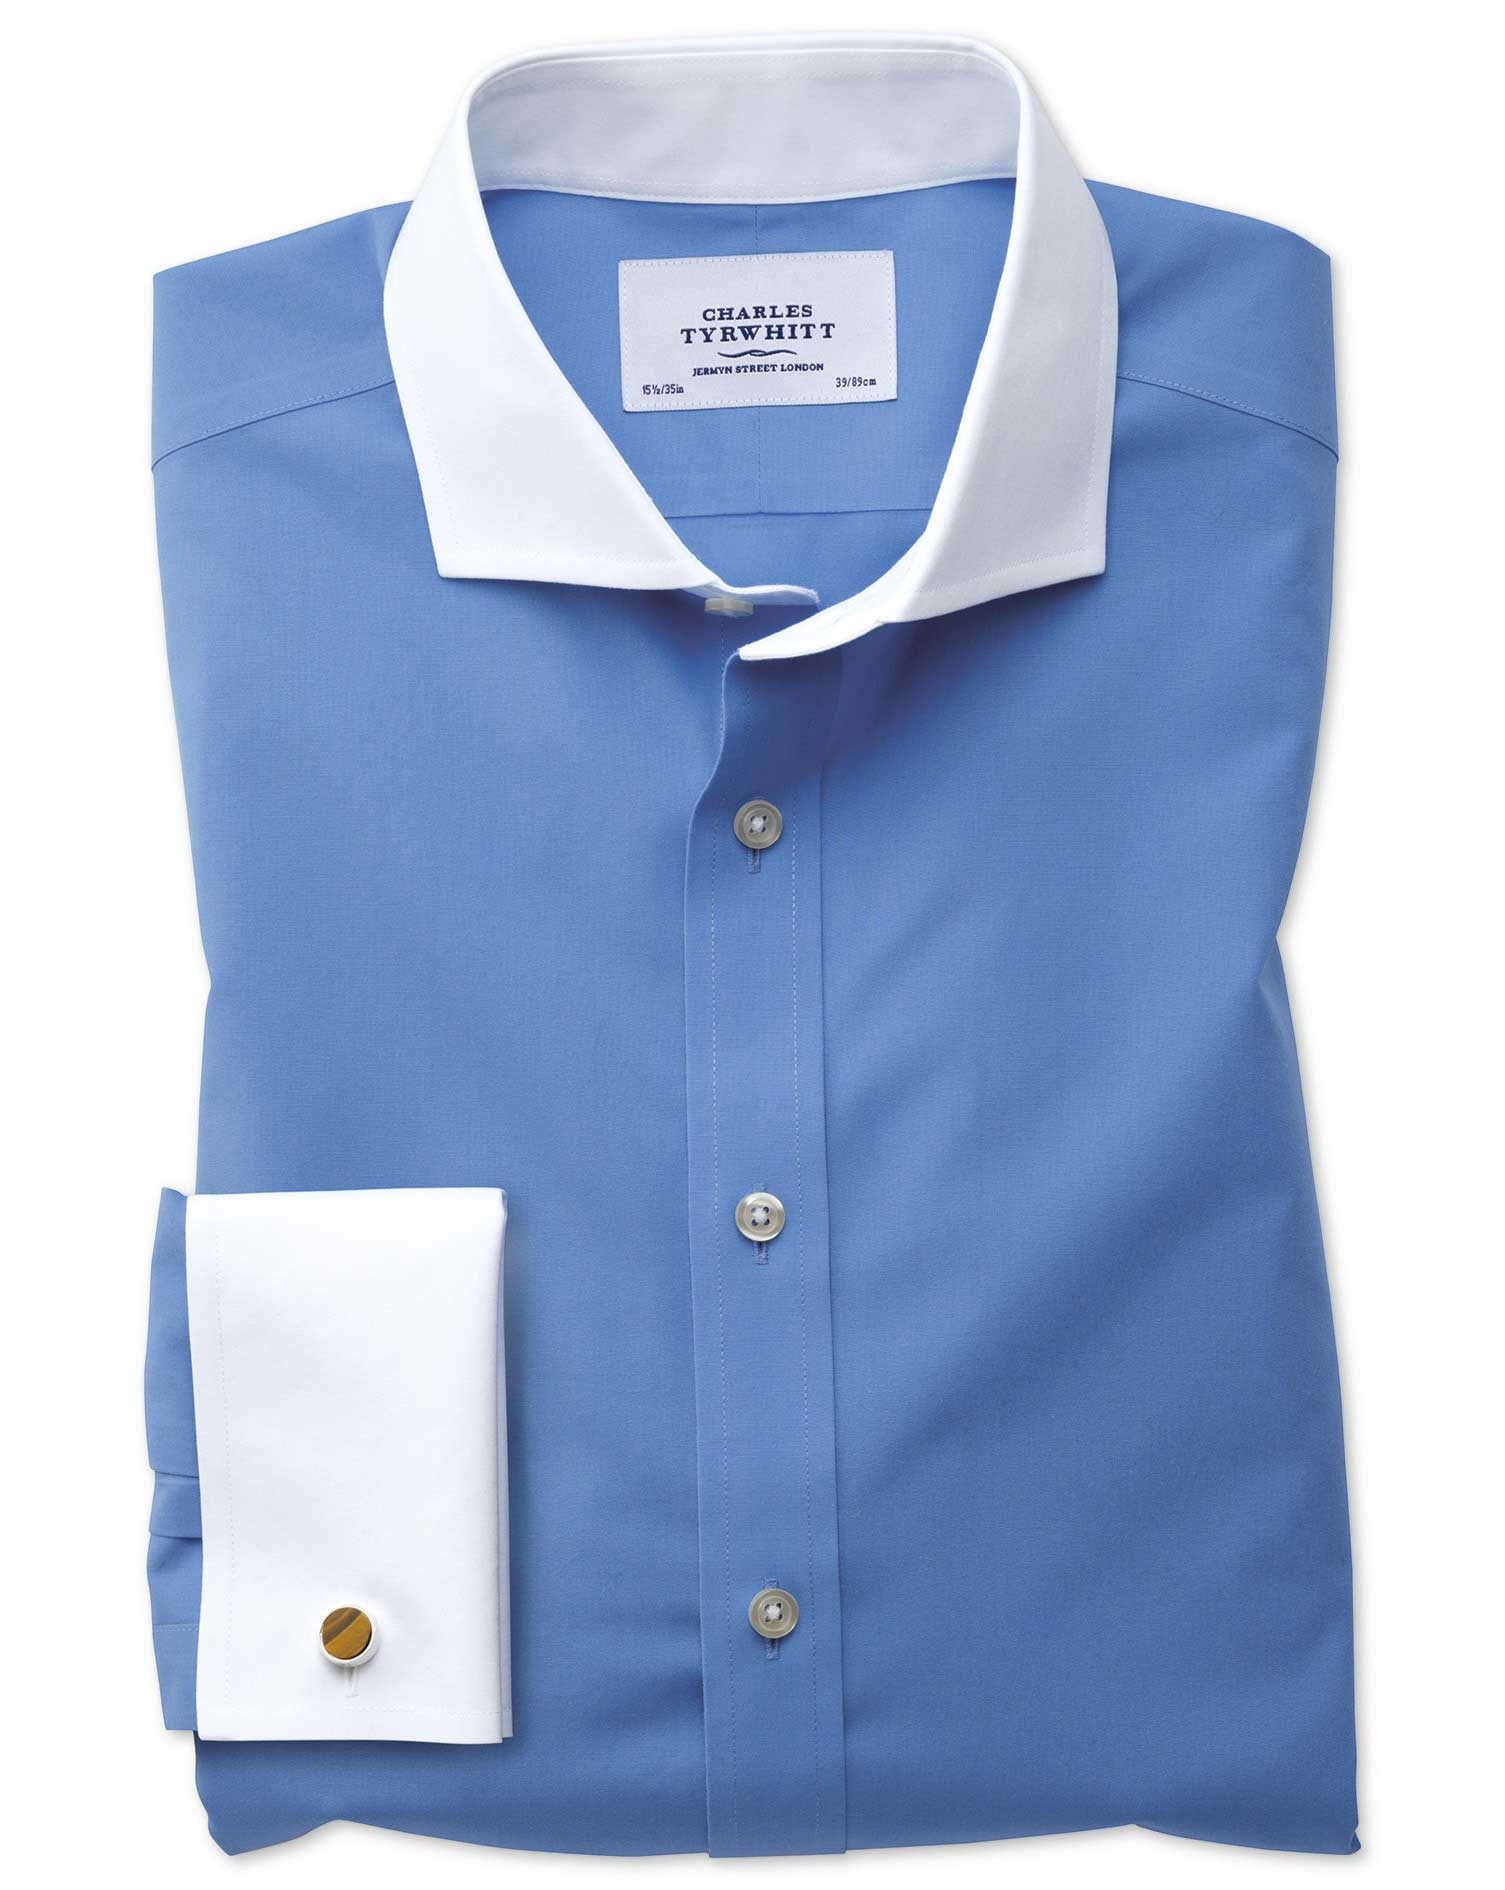 Slim Fit Cutaway Non-Iron Winchester Blue Cotton Formal Shirt Double Cuff Size 17.5/34 by Charles Ty